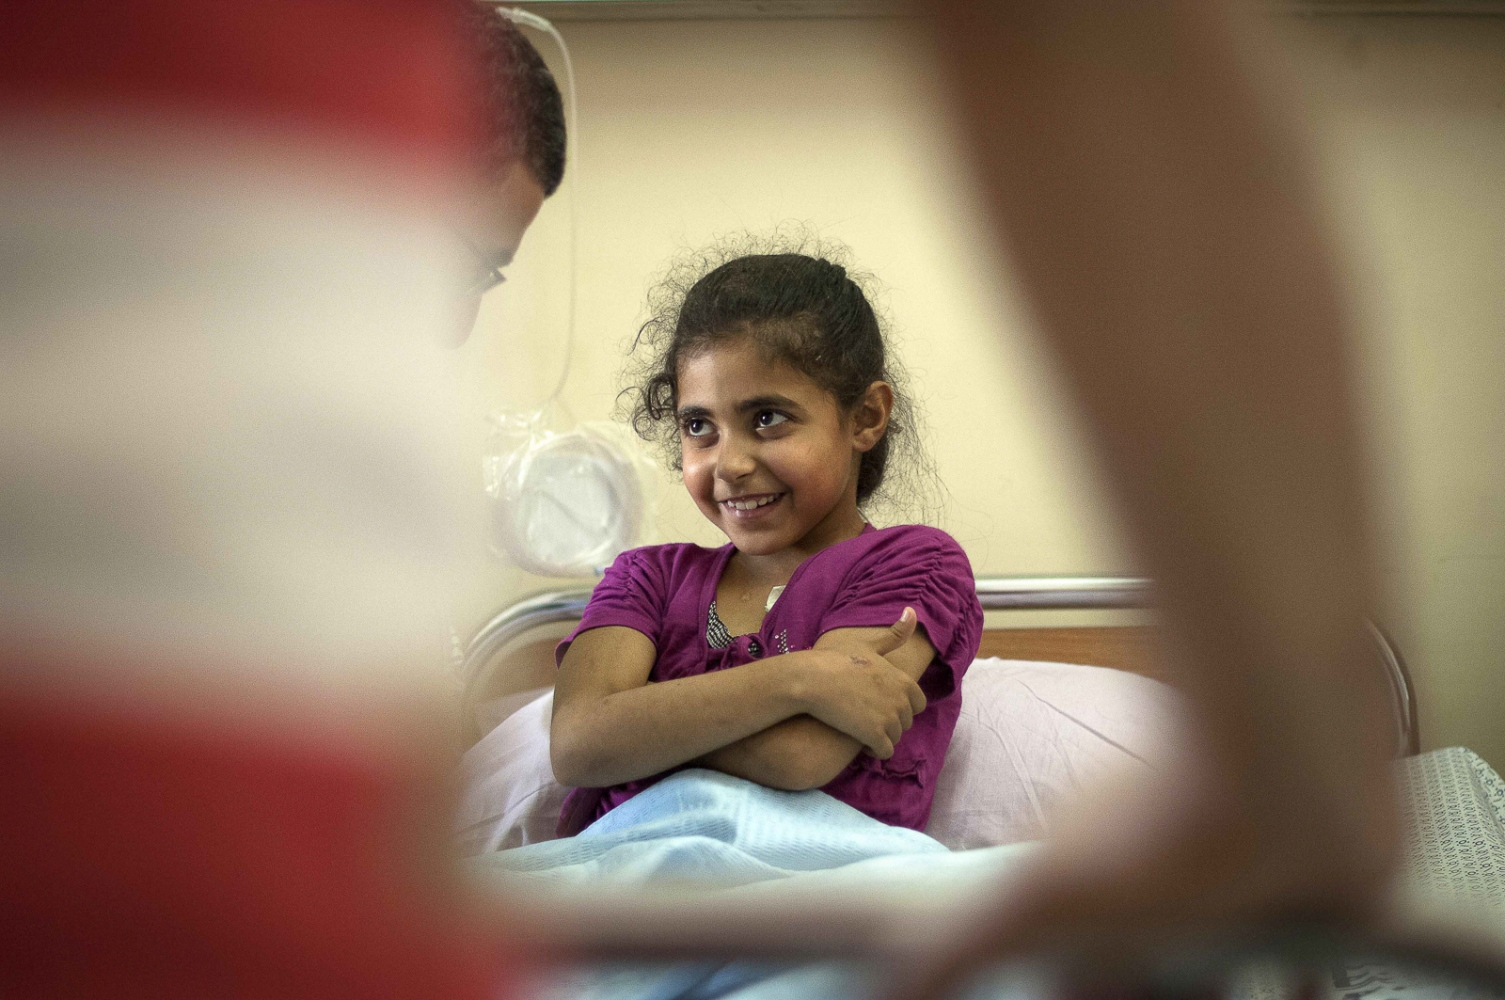 9 year old Fatma Othman meets the surgical team from The Royal Liverpool University Hospital for the first time prior to her kidney transplant operation the following day. Her mother Marwa is donating her kidney to her daughter. At the Al Shifa Hospital in Gaza City, occupied Palestinian territory.